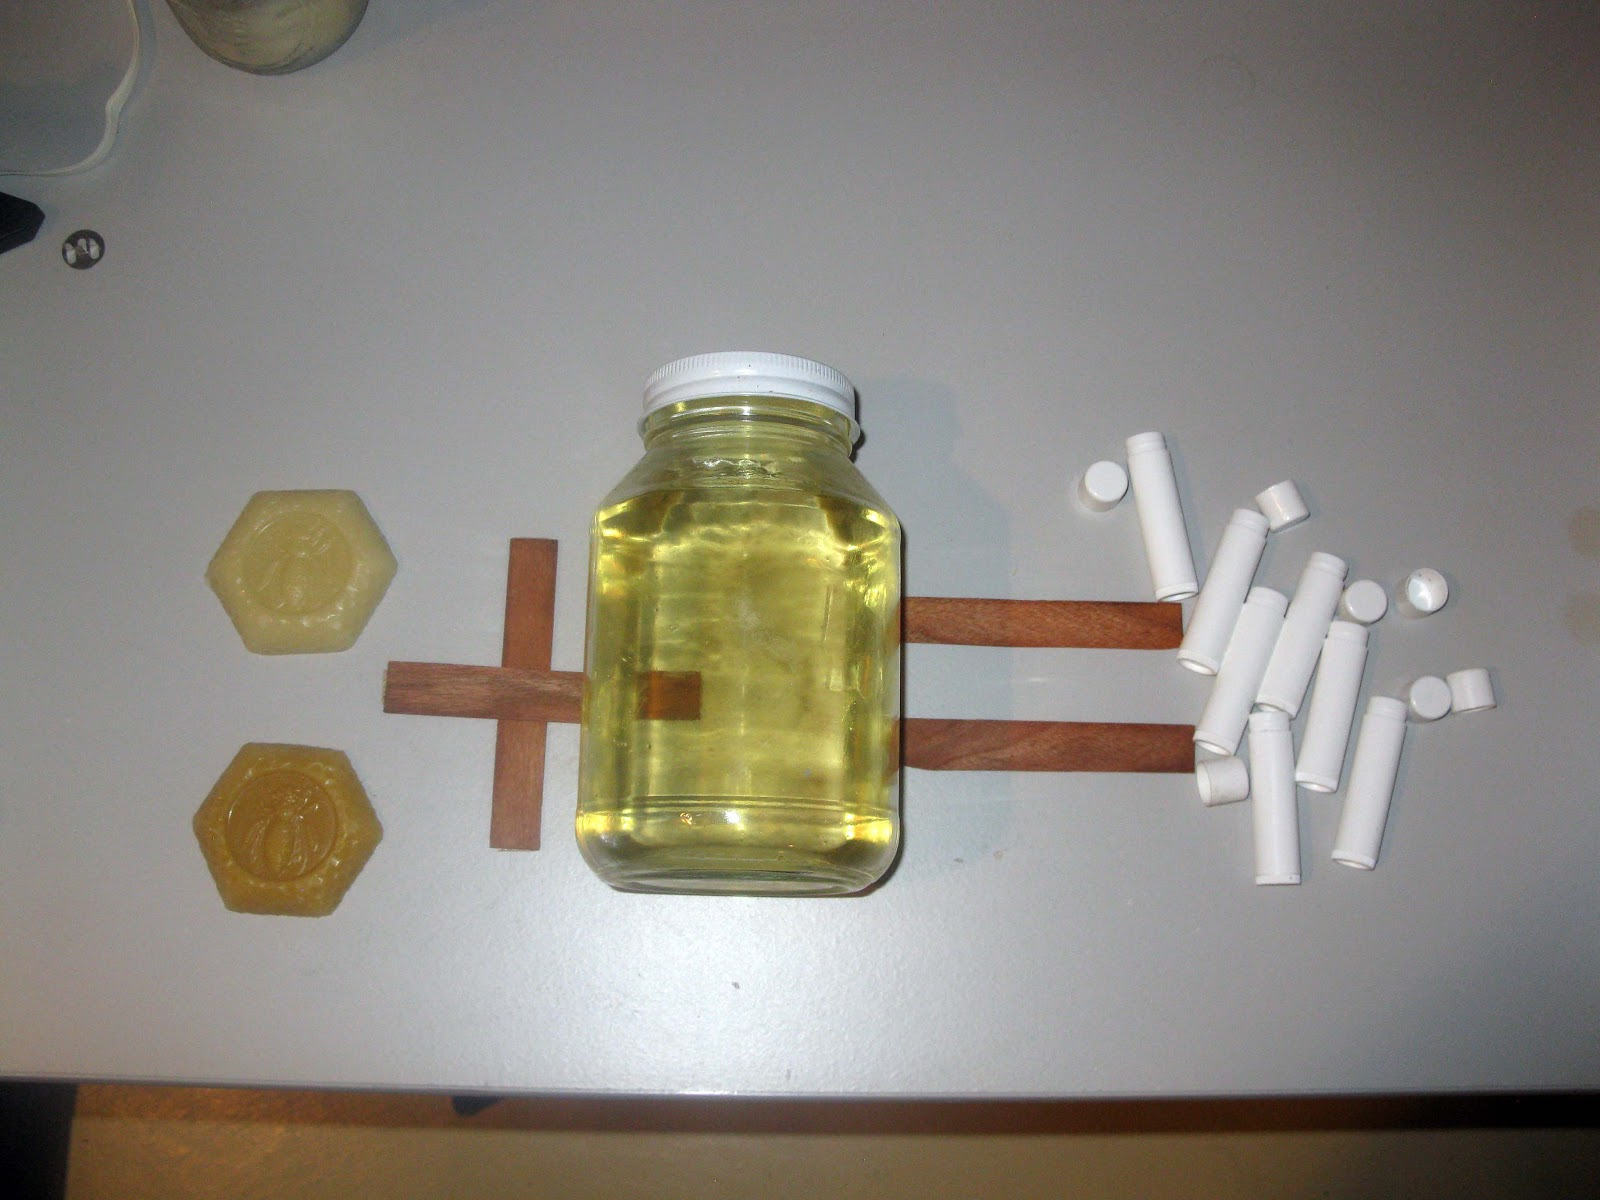 What experiment could I do to find out what bond is present in wax?